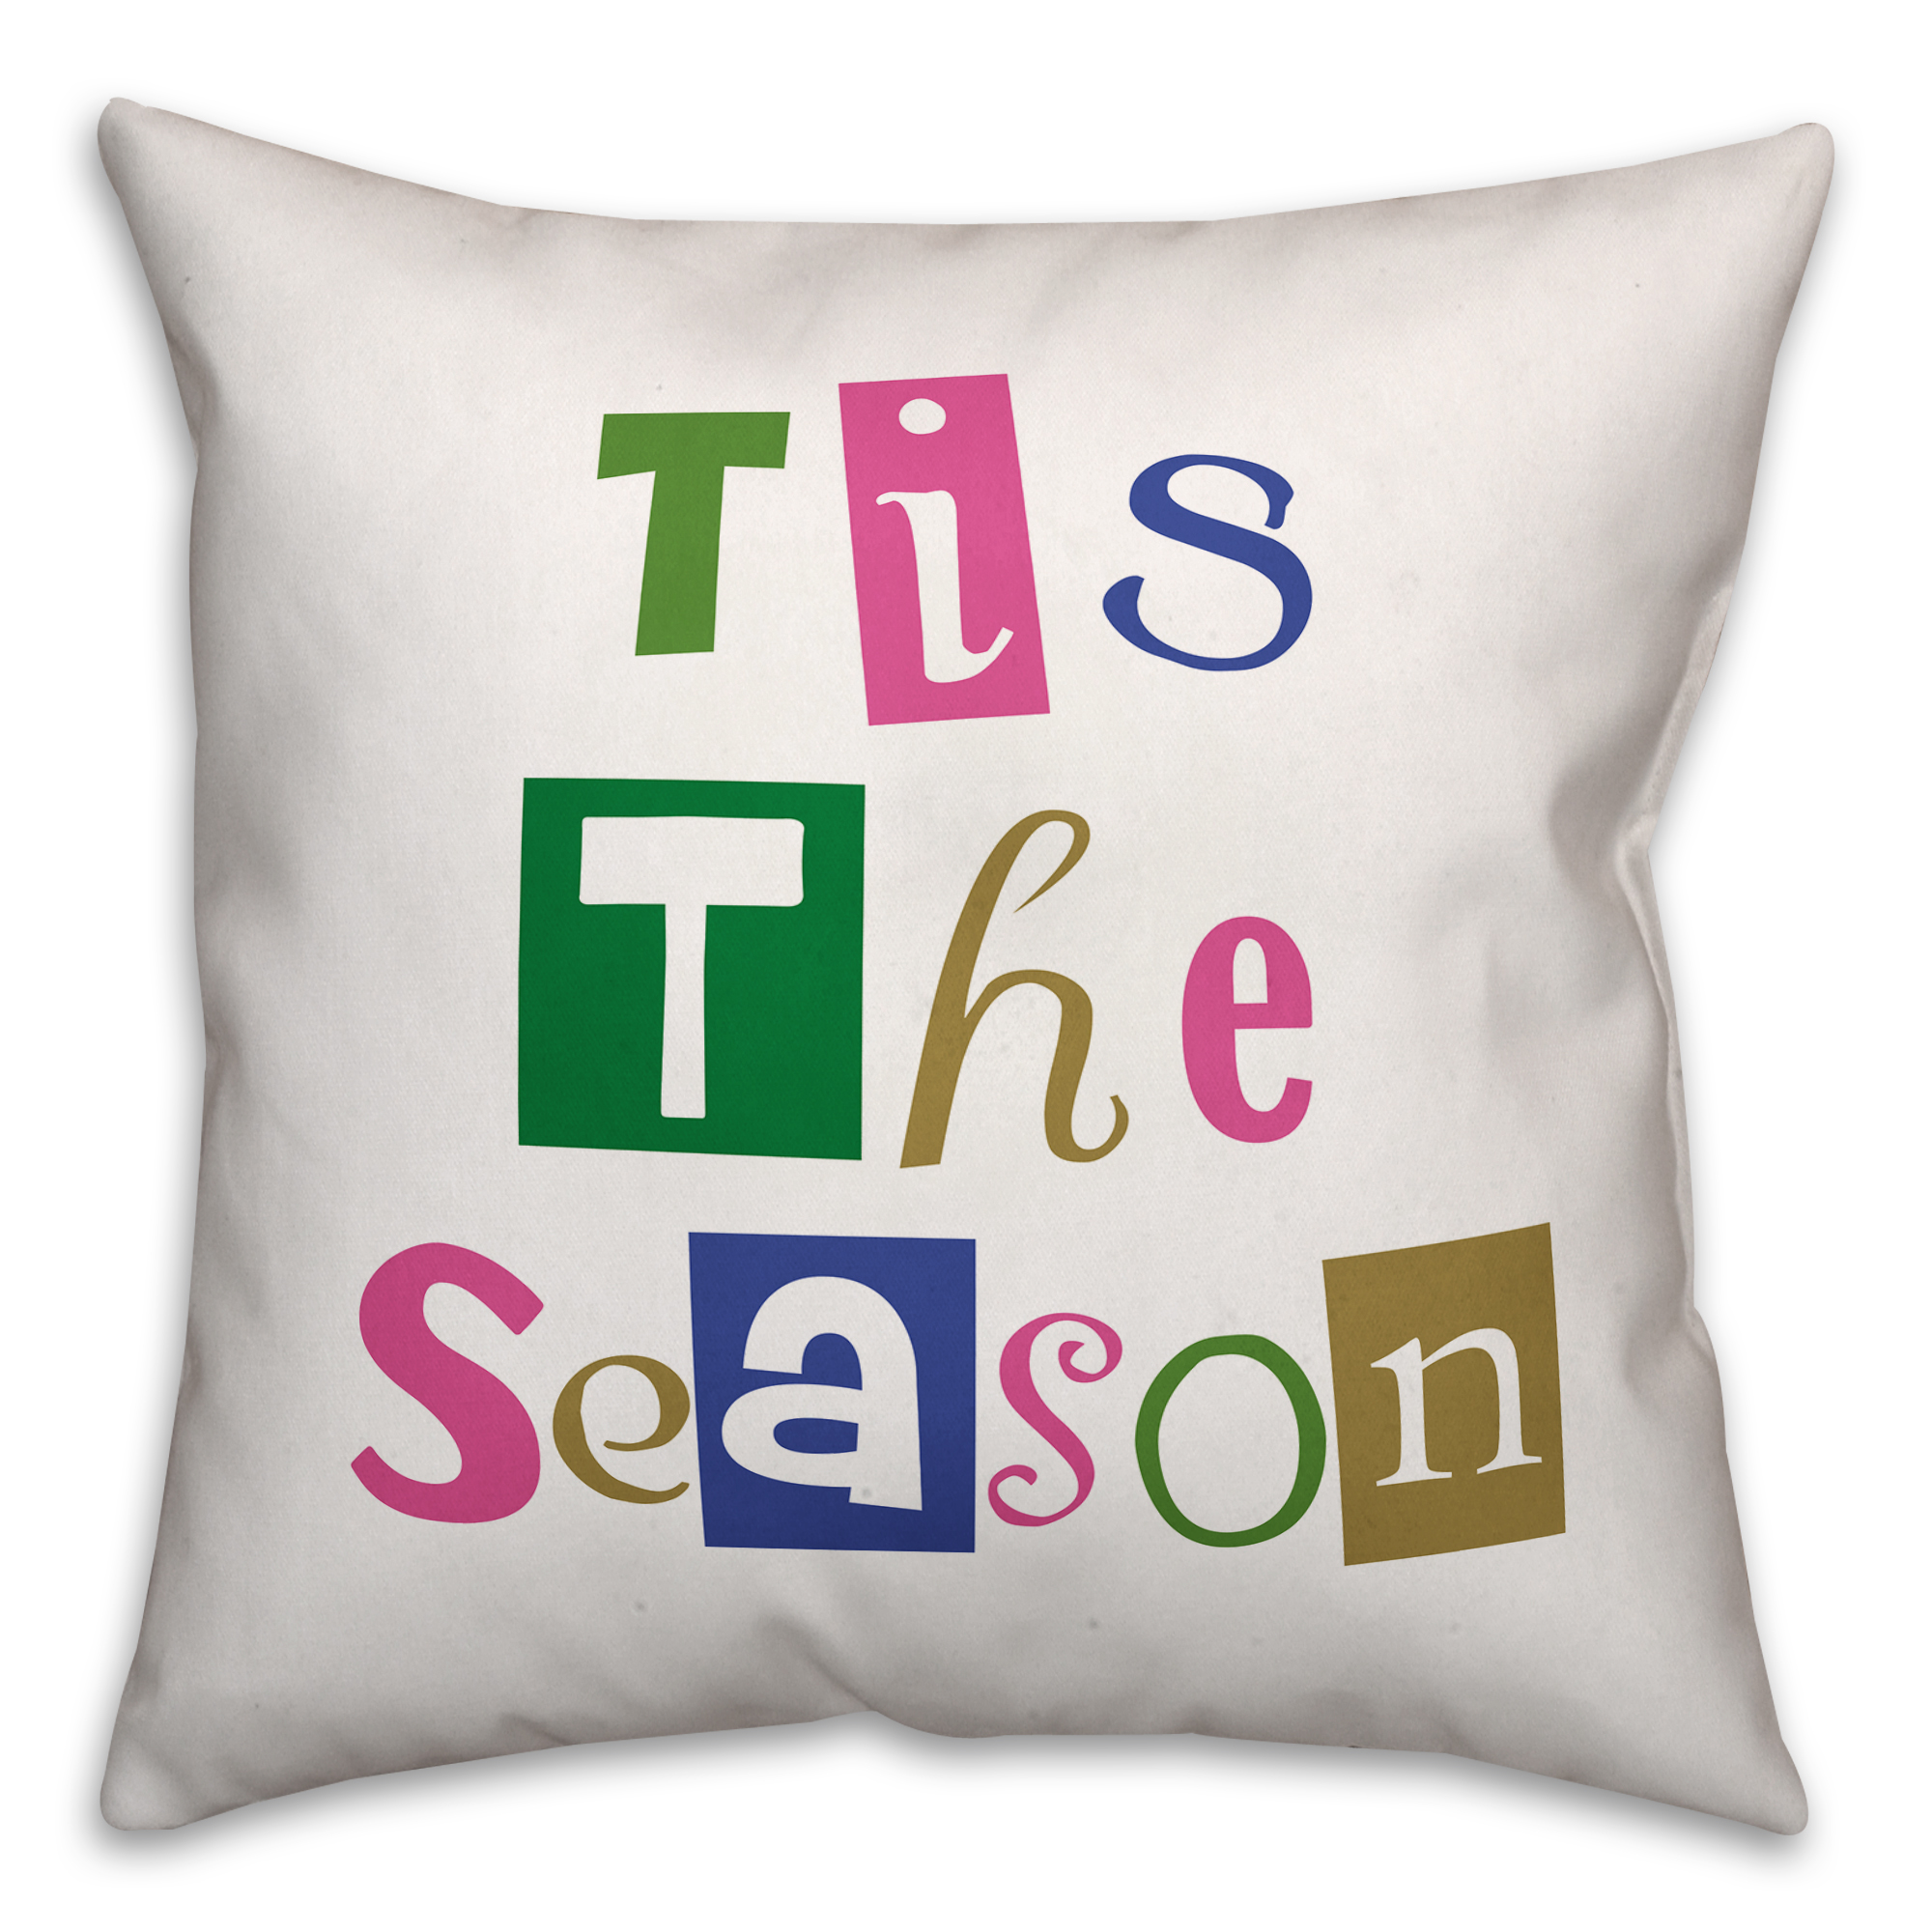 Tis the Season 16x16 Spun Poly Pillow